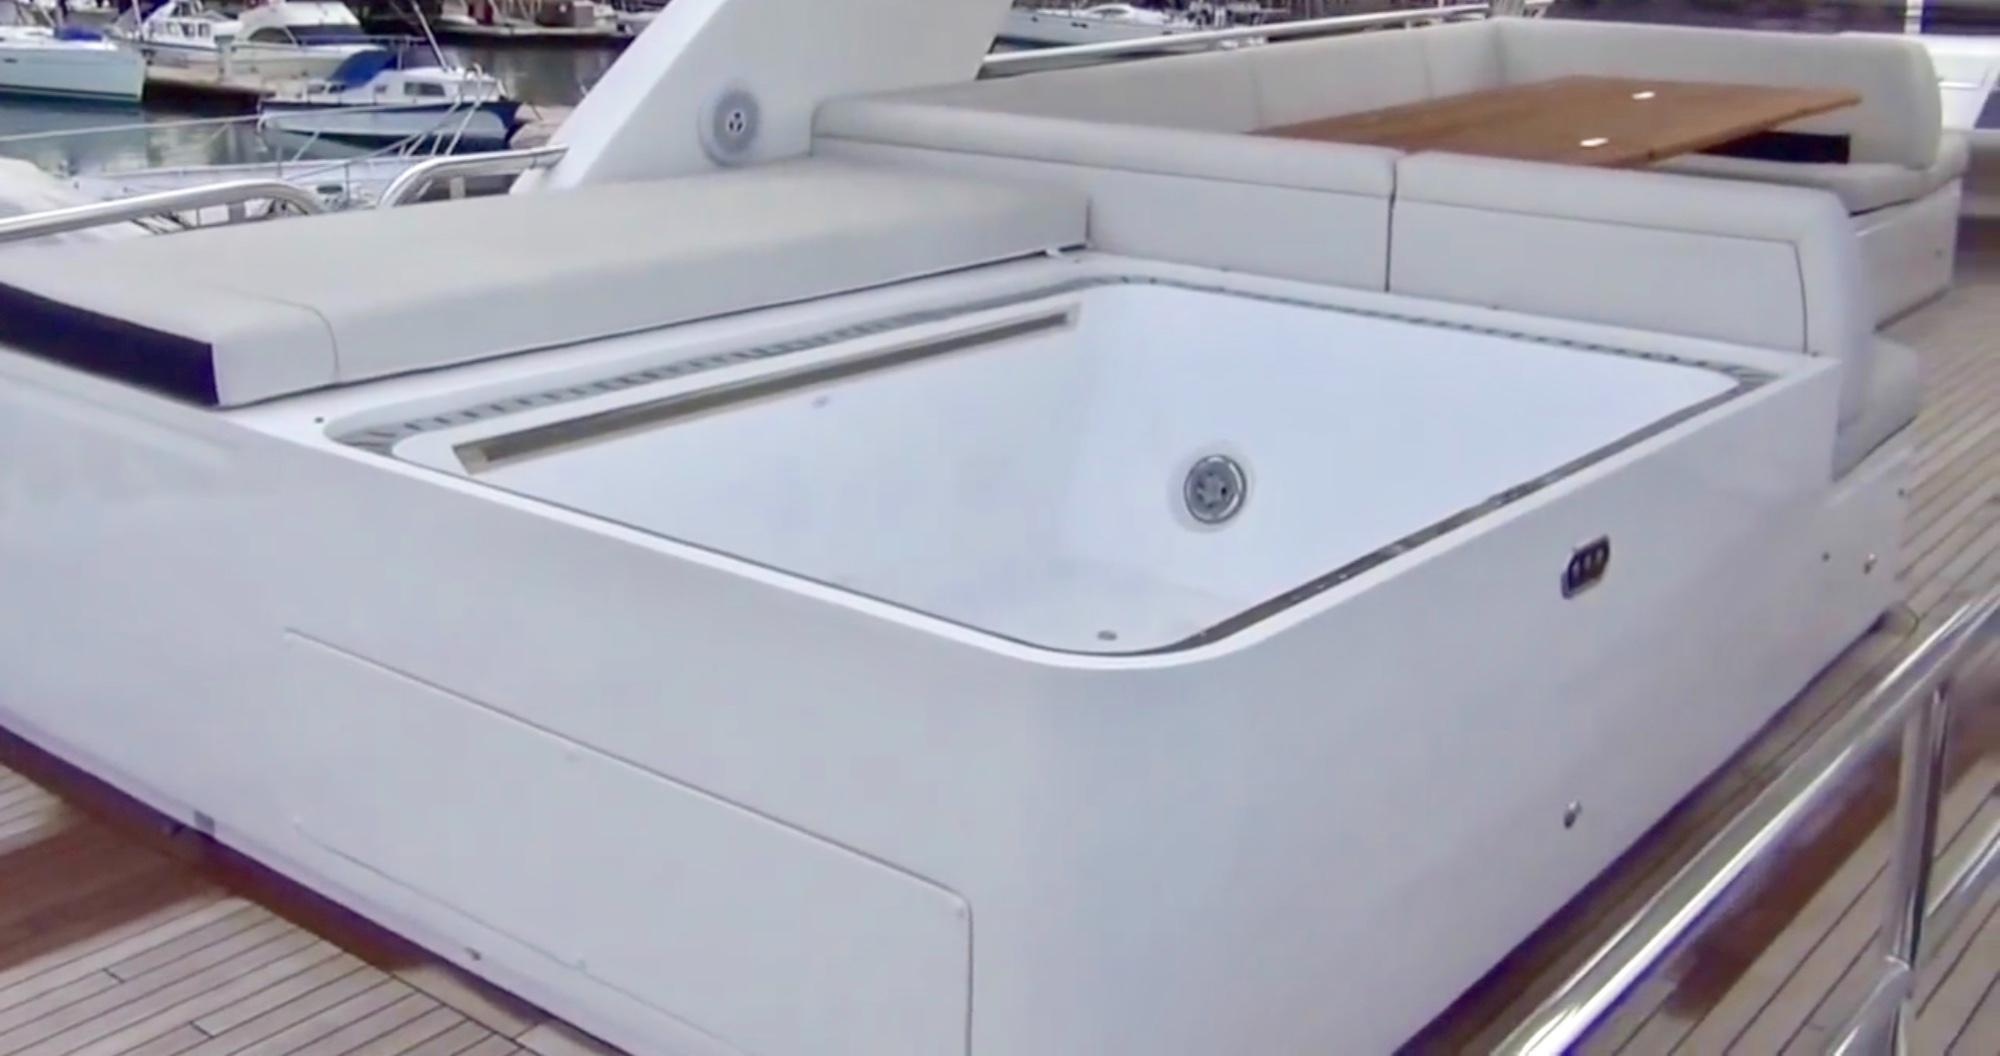 Jacuzzi at Flybridge